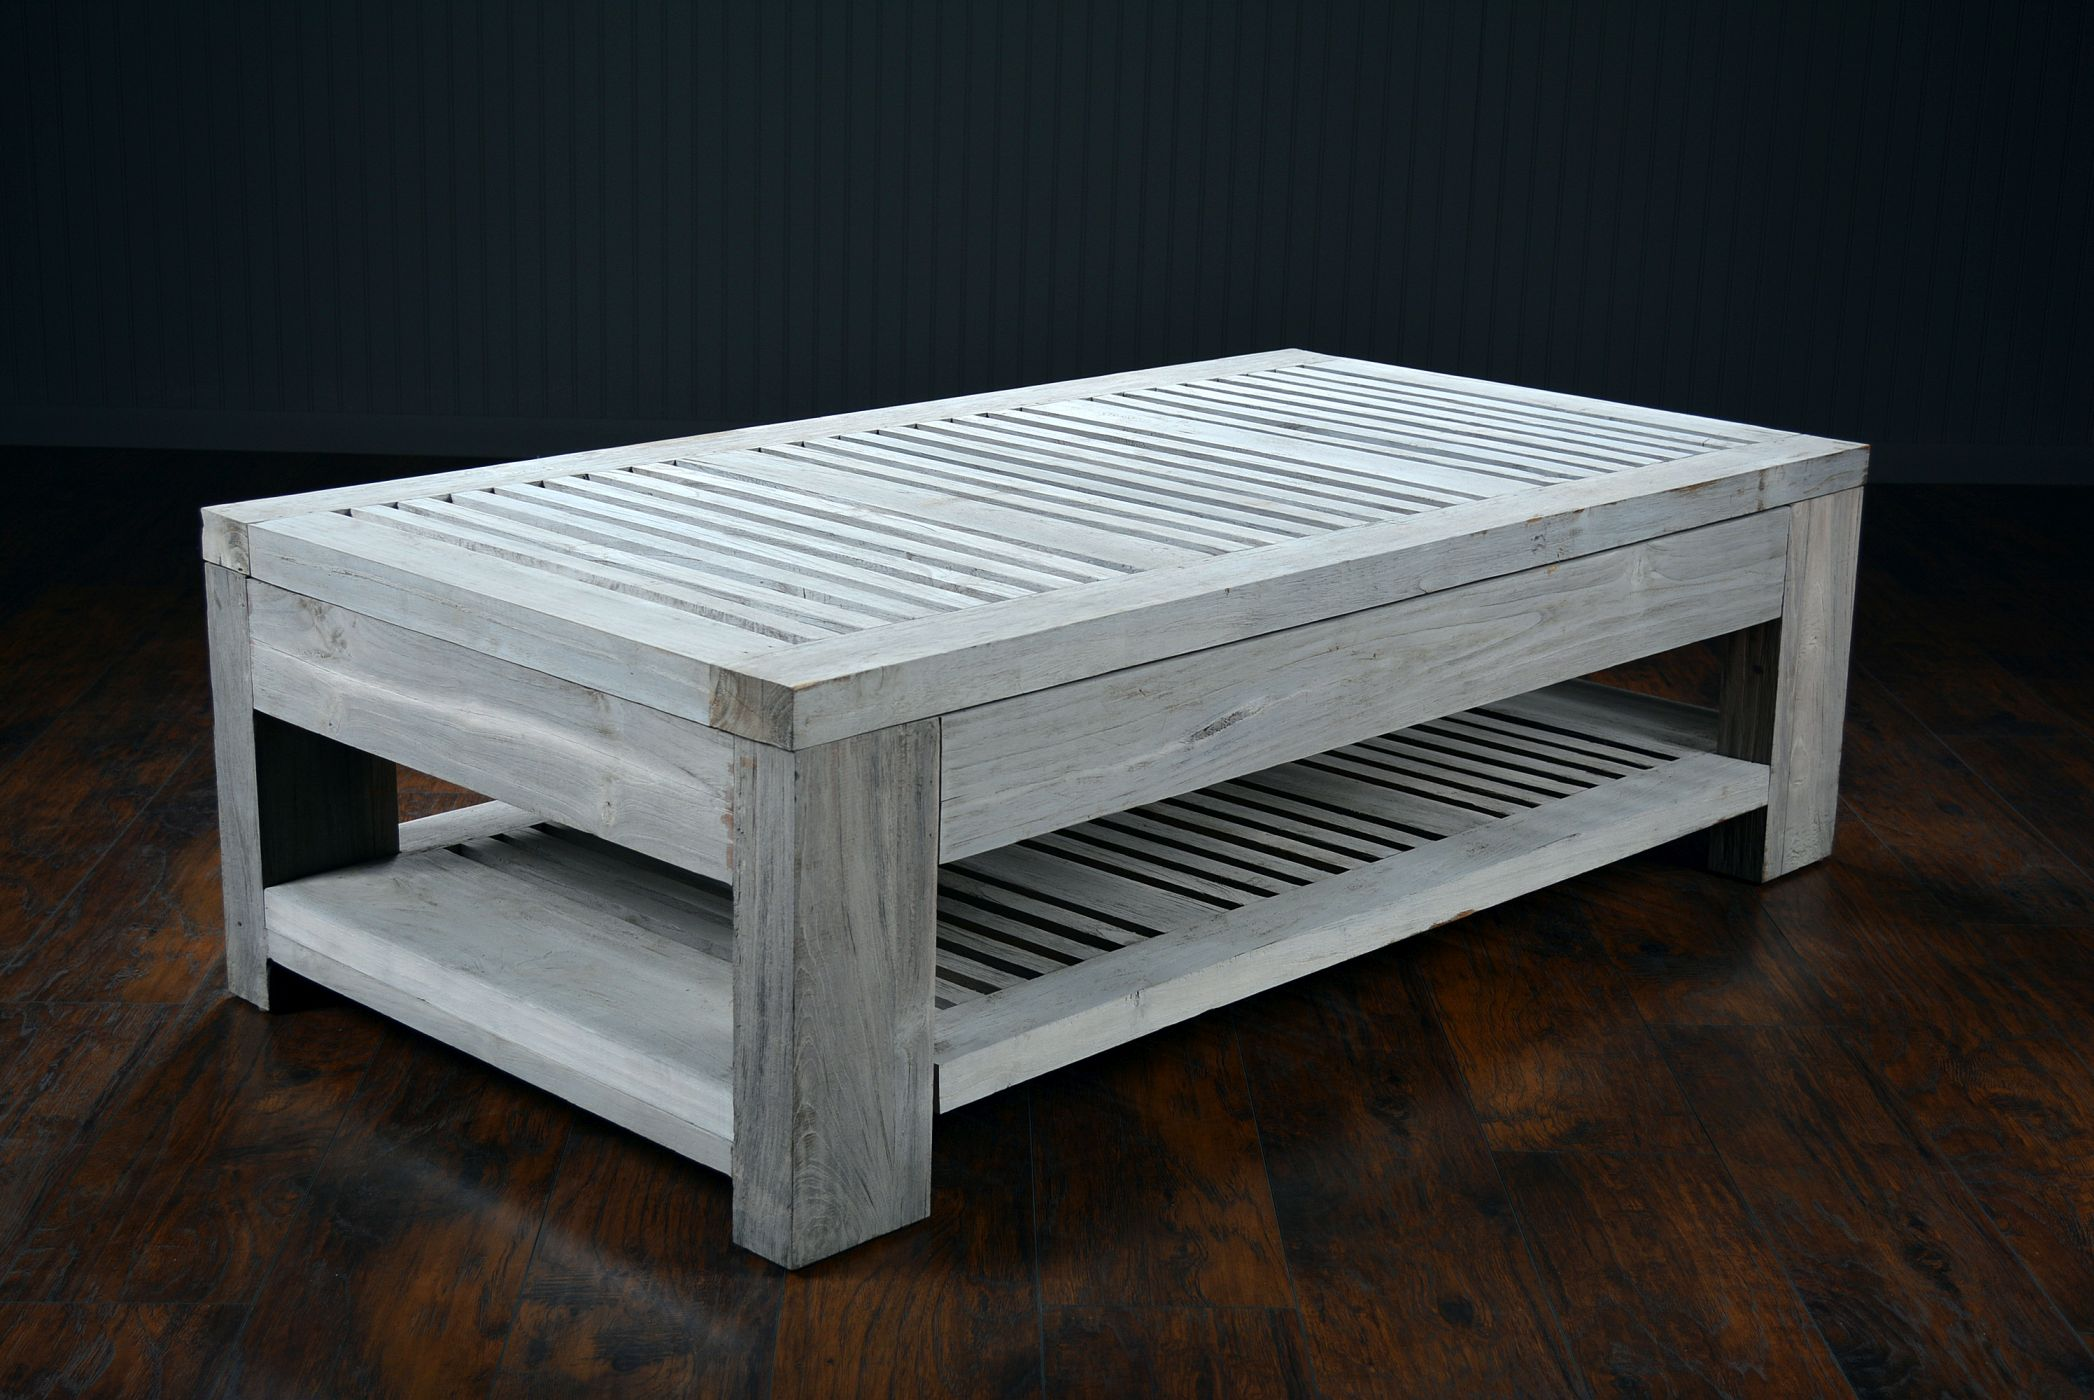 Slatted Reclaimed Aged Teak Outdoor Coffee Table - Mecox Gardens